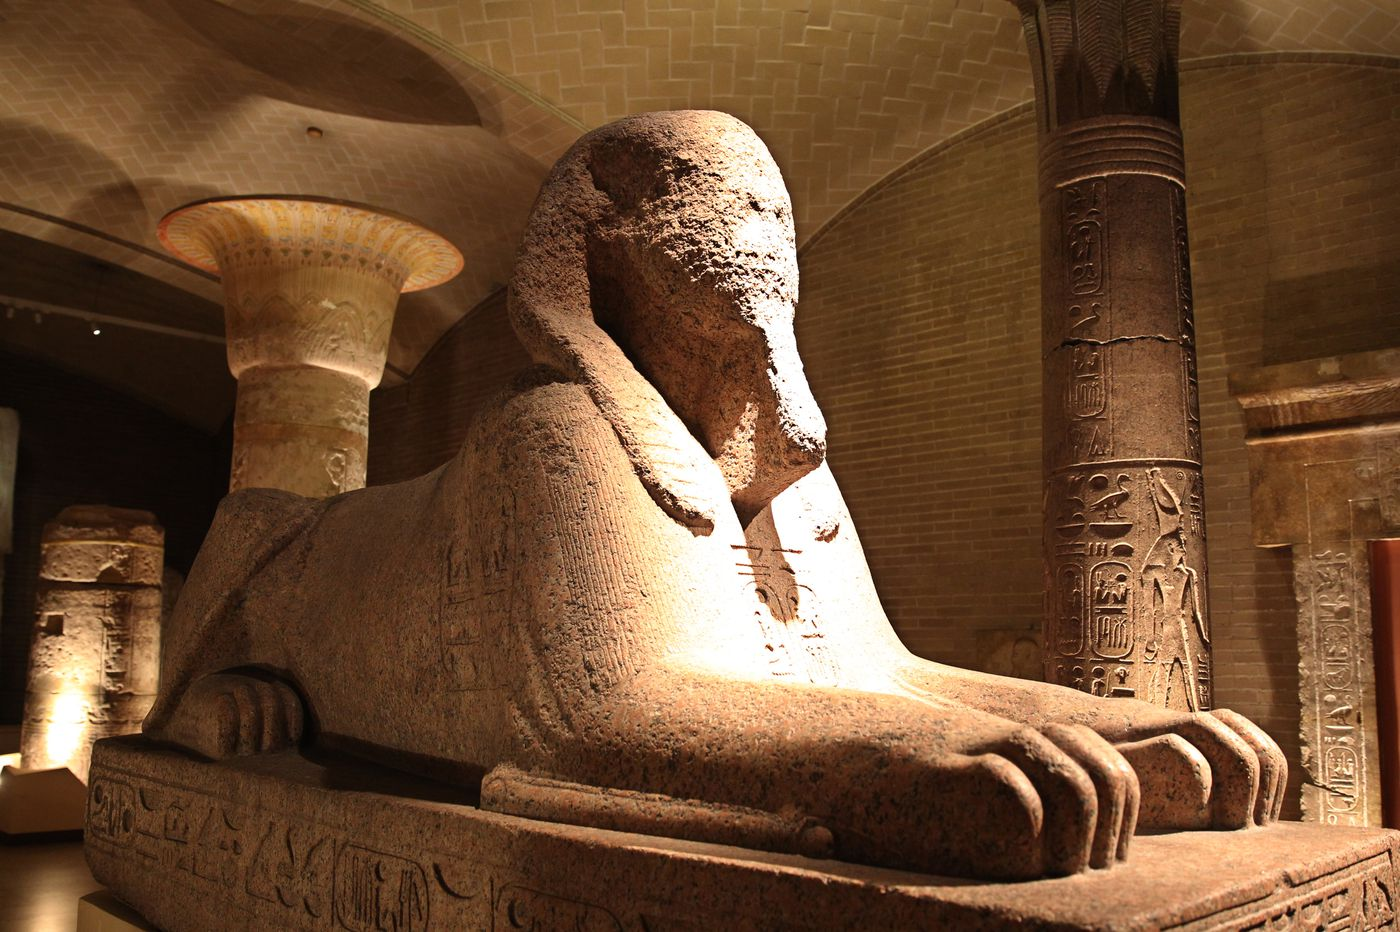 Visit the Penn Museum's Sphinx this weekend, or wait another 4 to 6 years